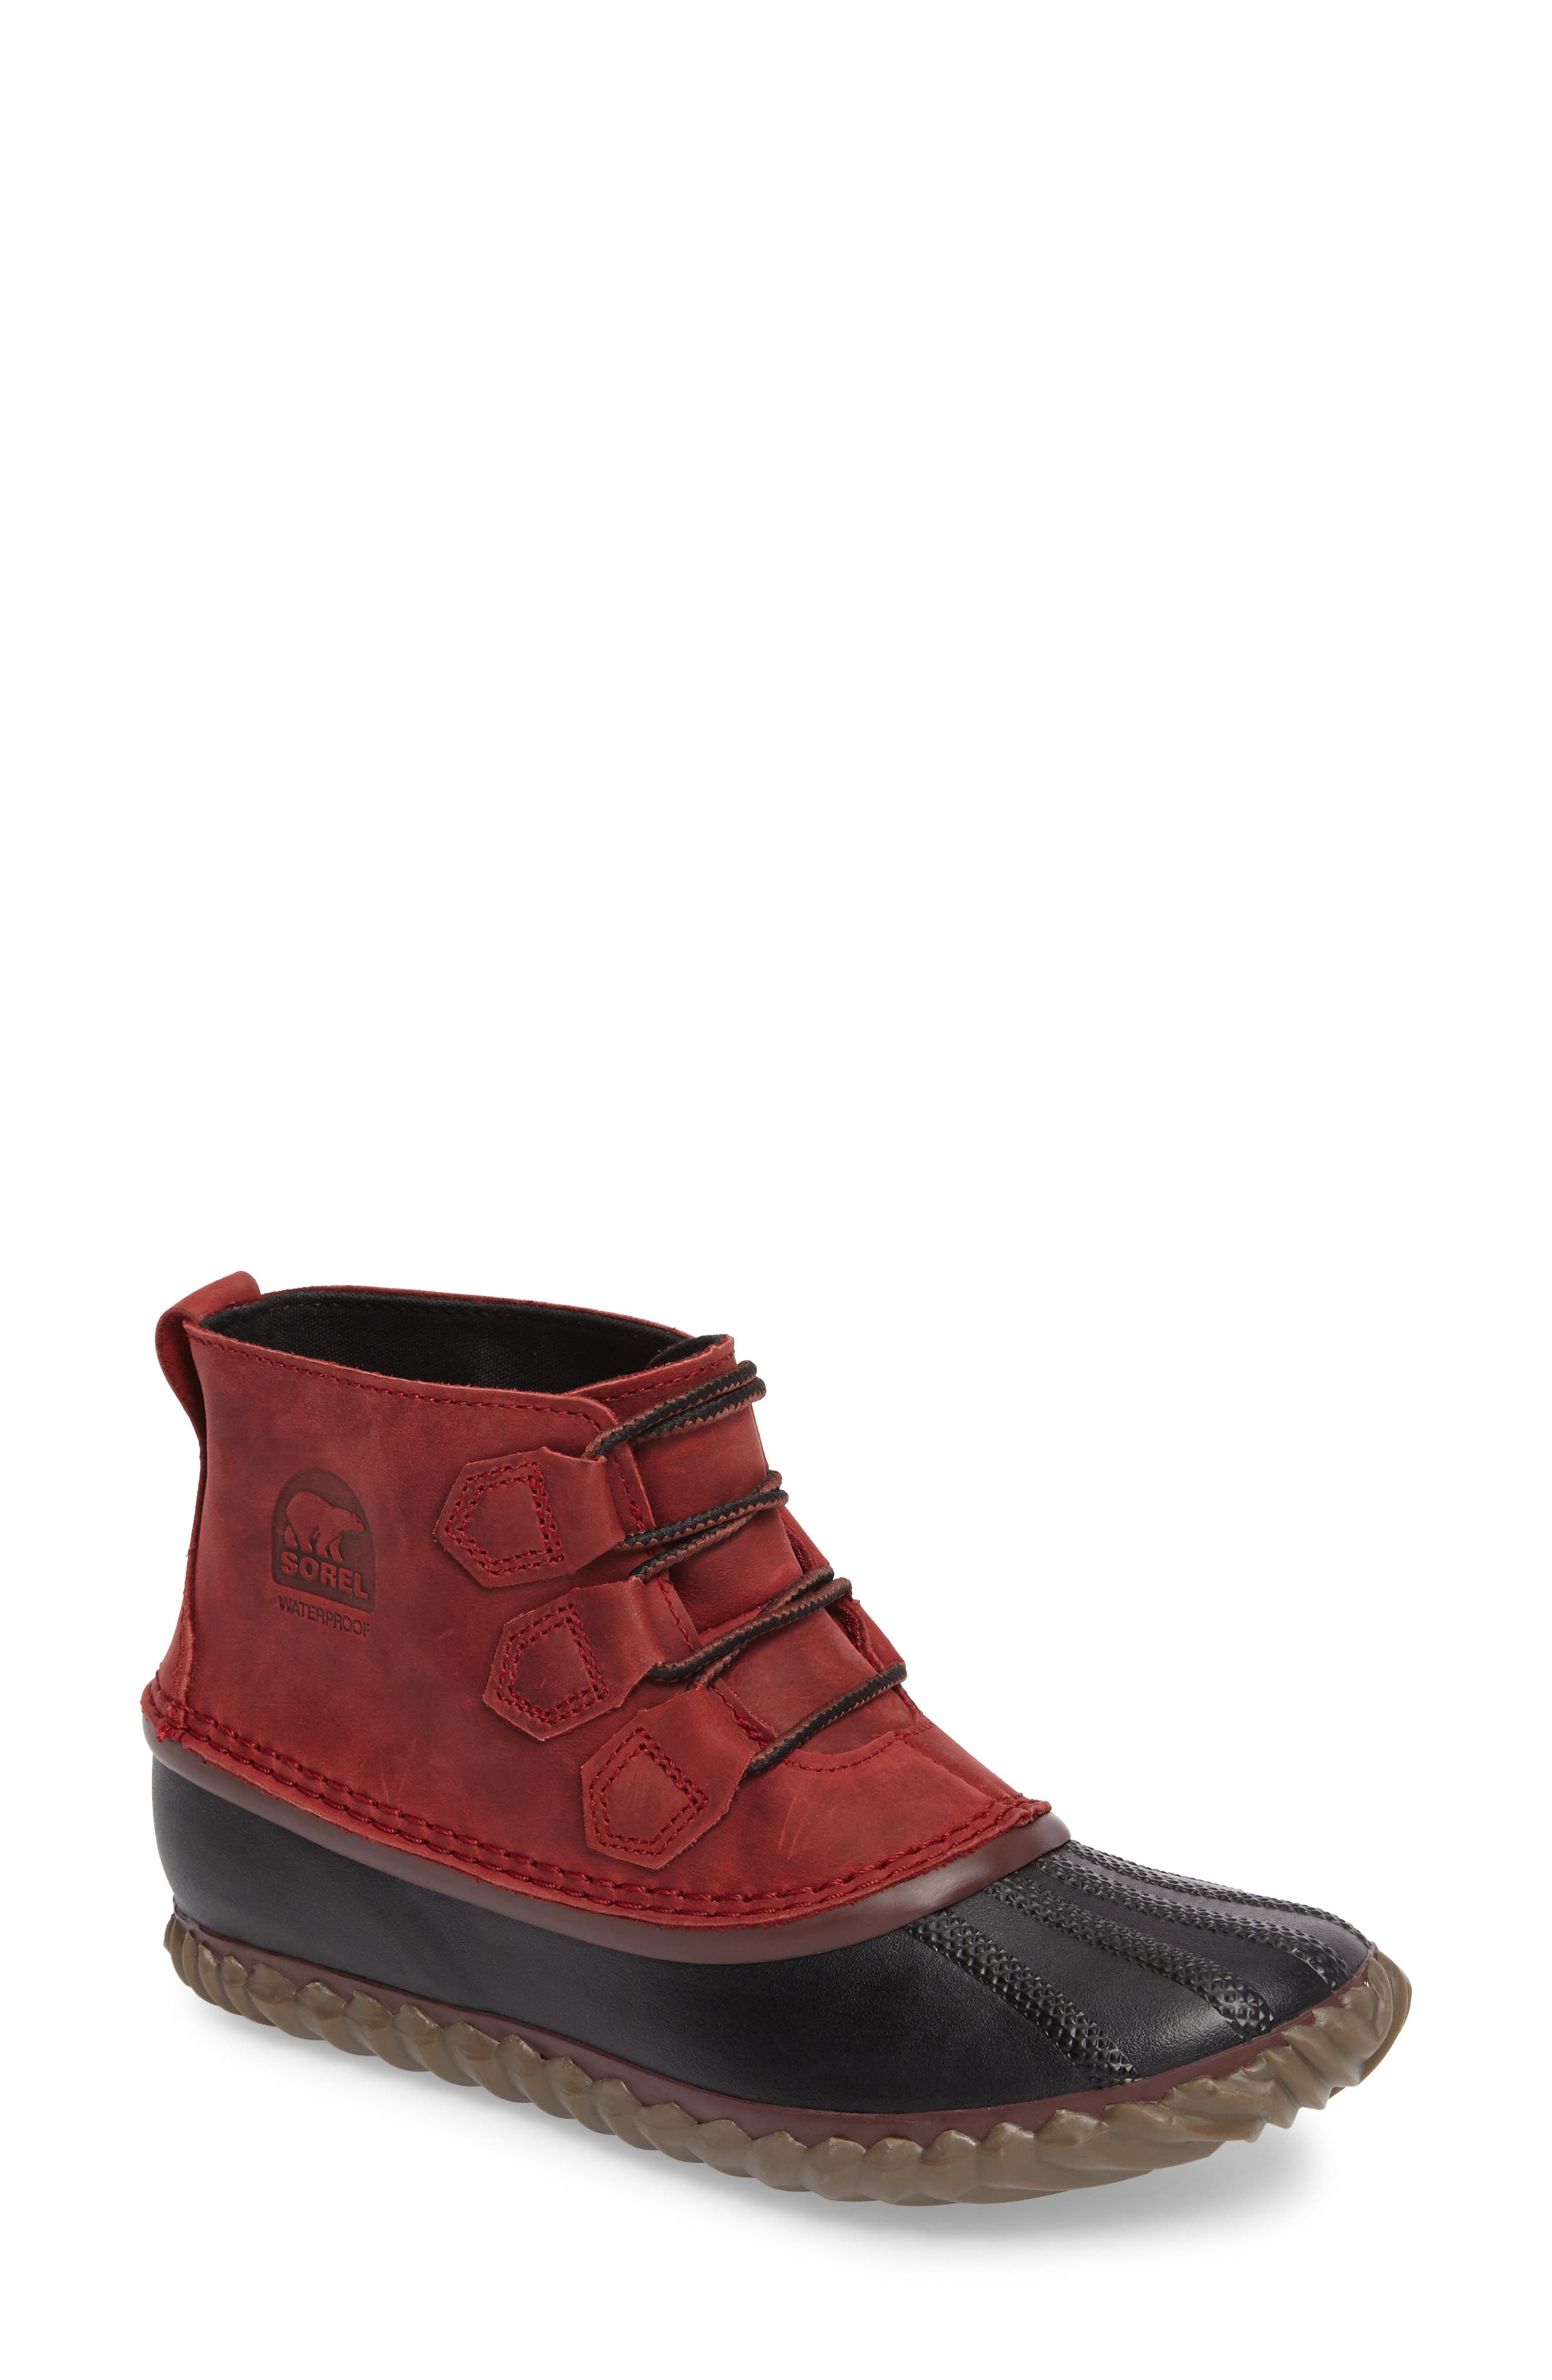 'Out N About' Leather Boot,                             Main thumbnail 10, color,